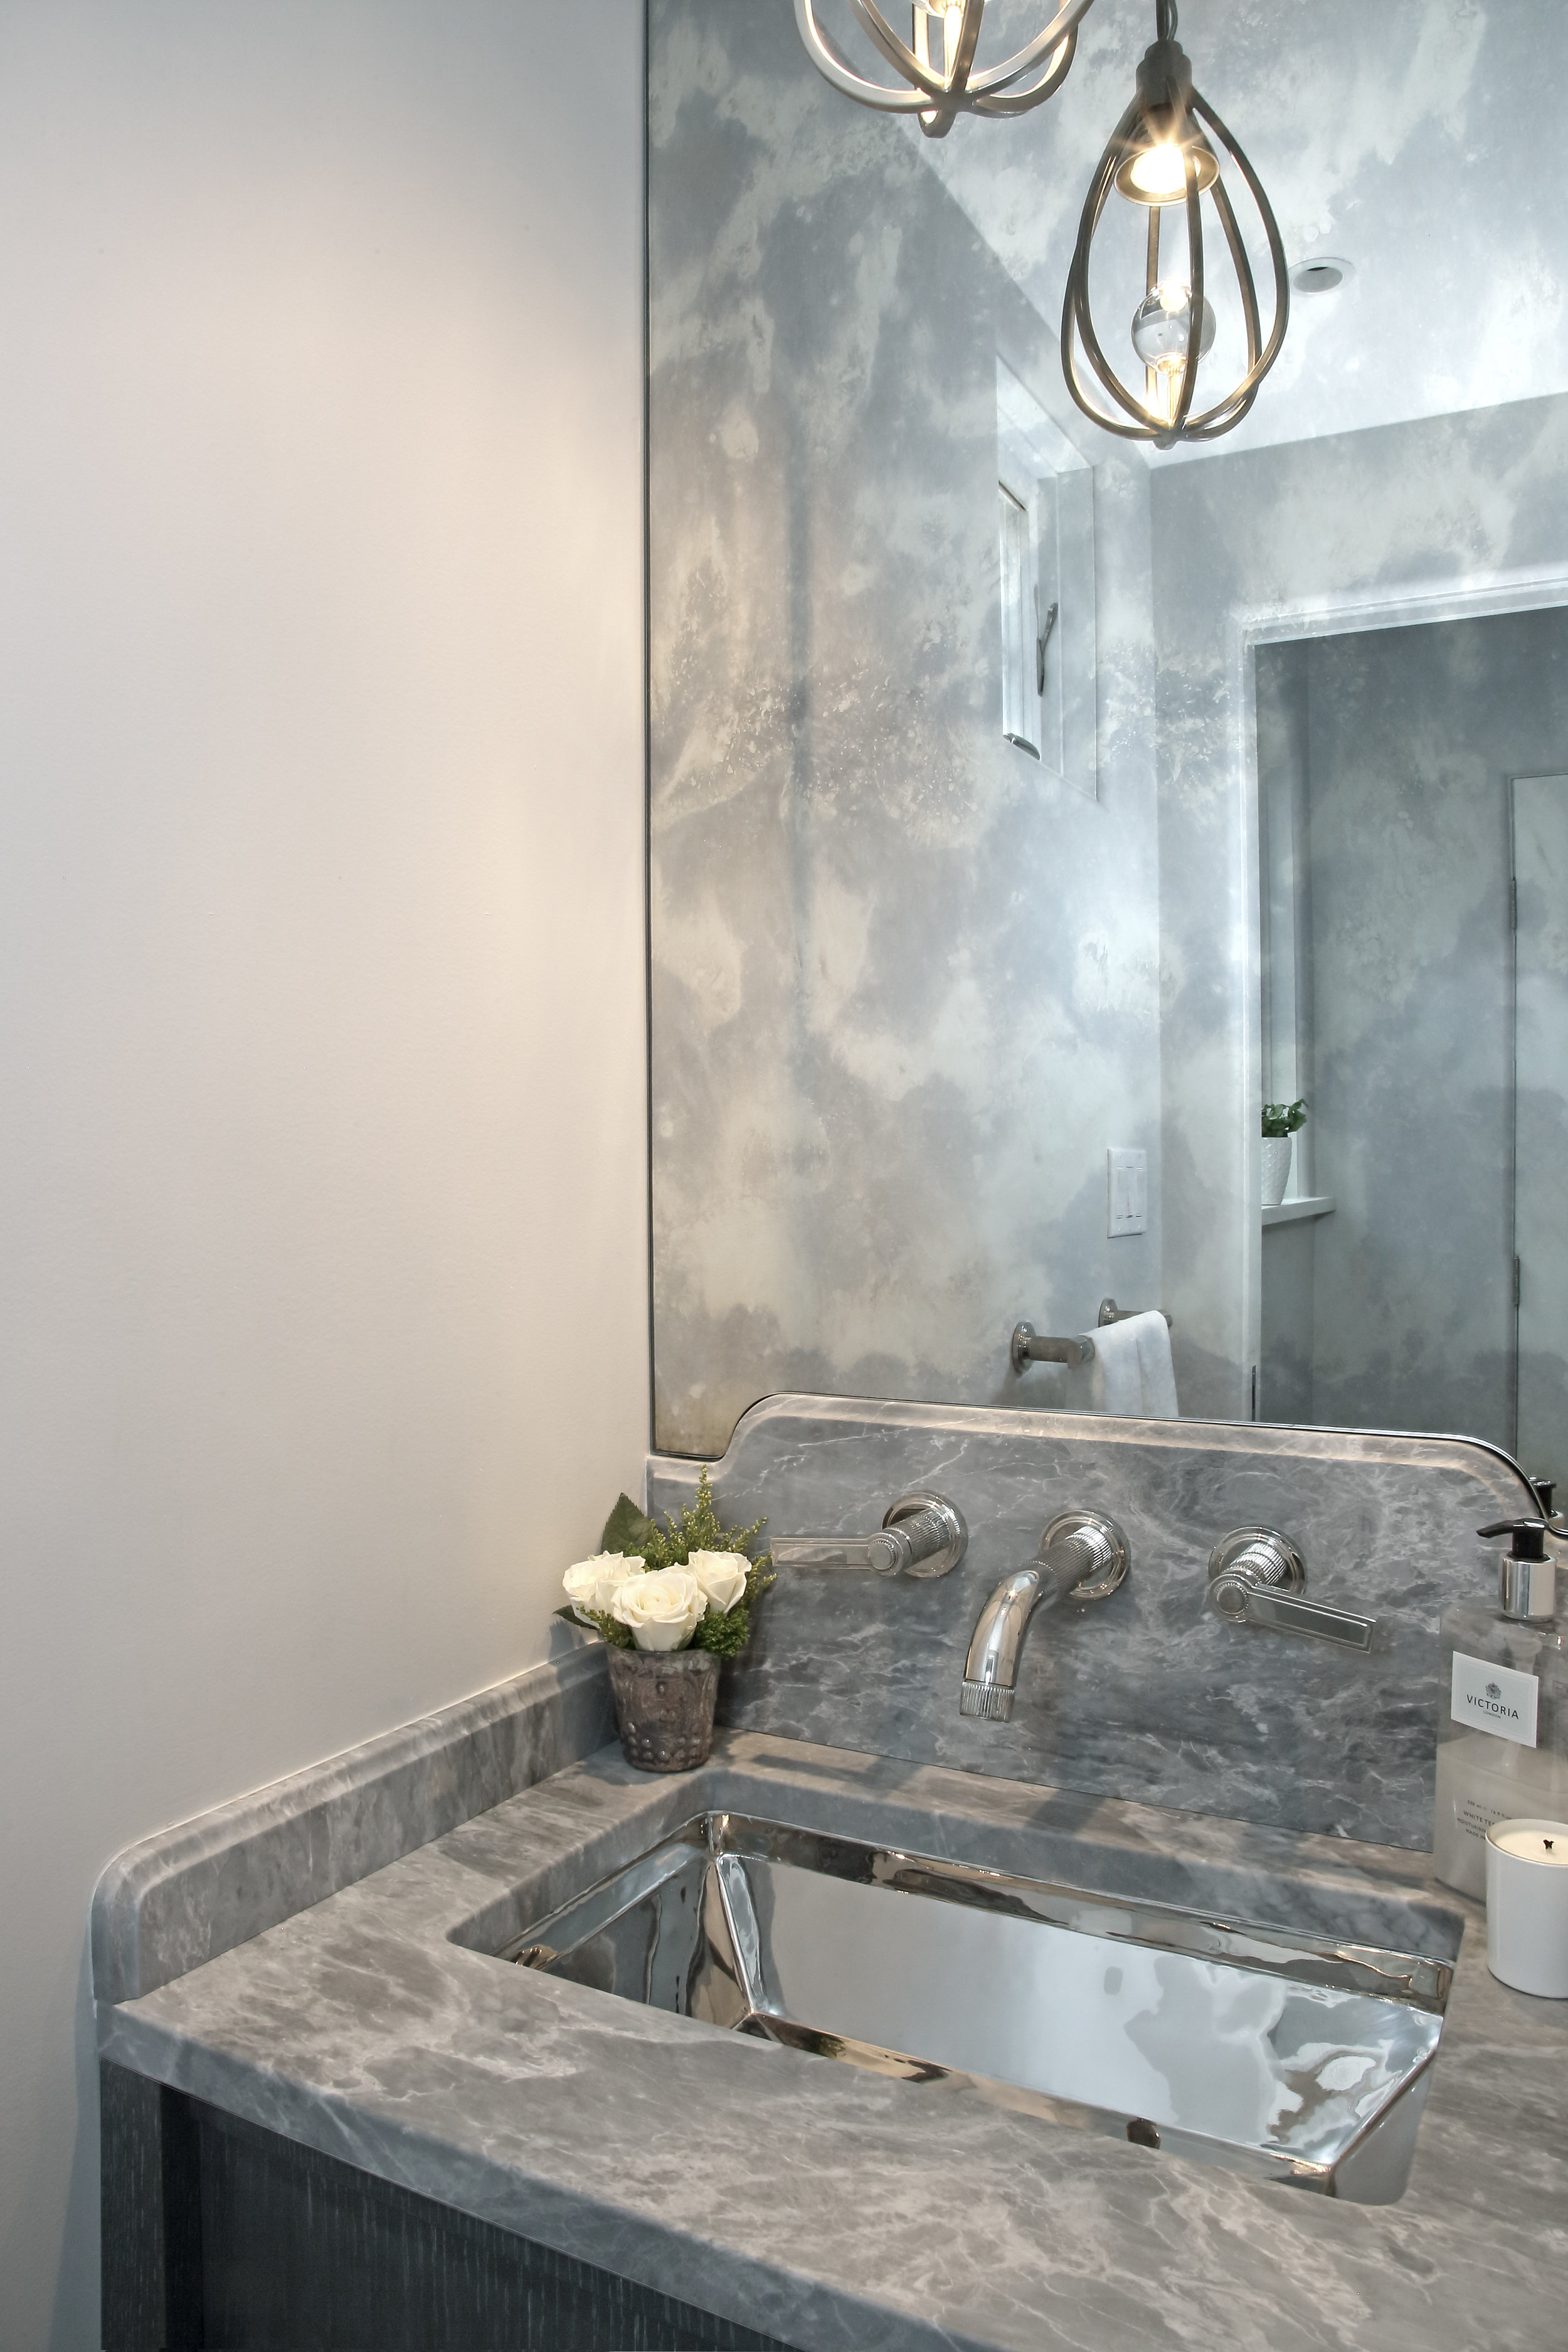 KAM DESIGN_Powder Room_Larchmont_2018_564.jpg